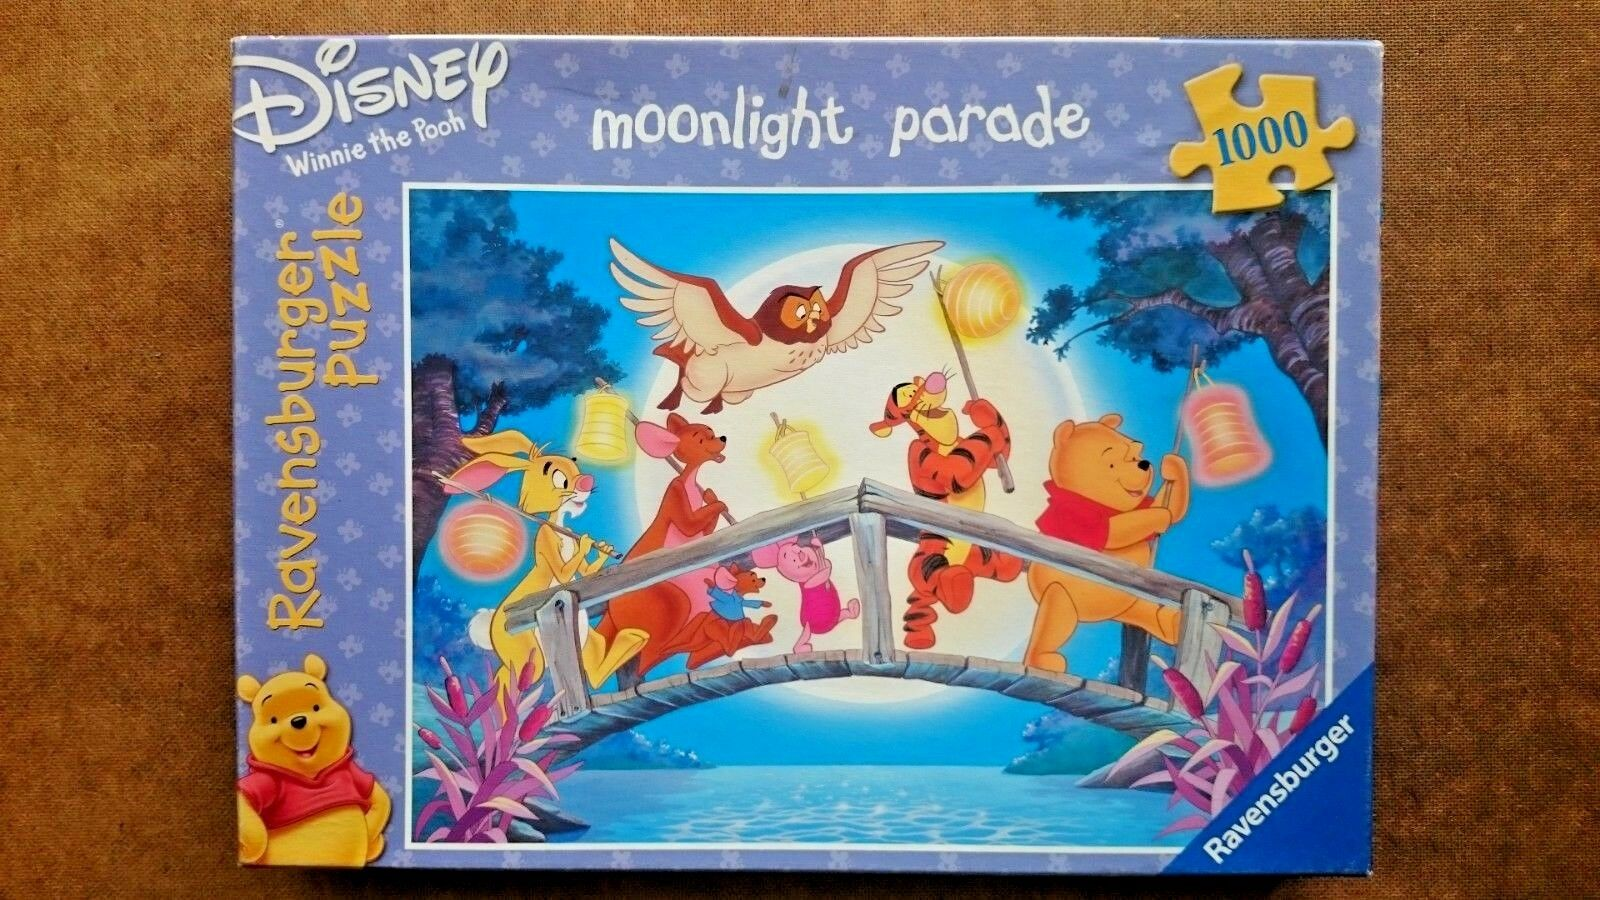 Winnie the Pooh  Moonlight Parade 1000 Piece Jigsaw Puzzle By Ravensburger